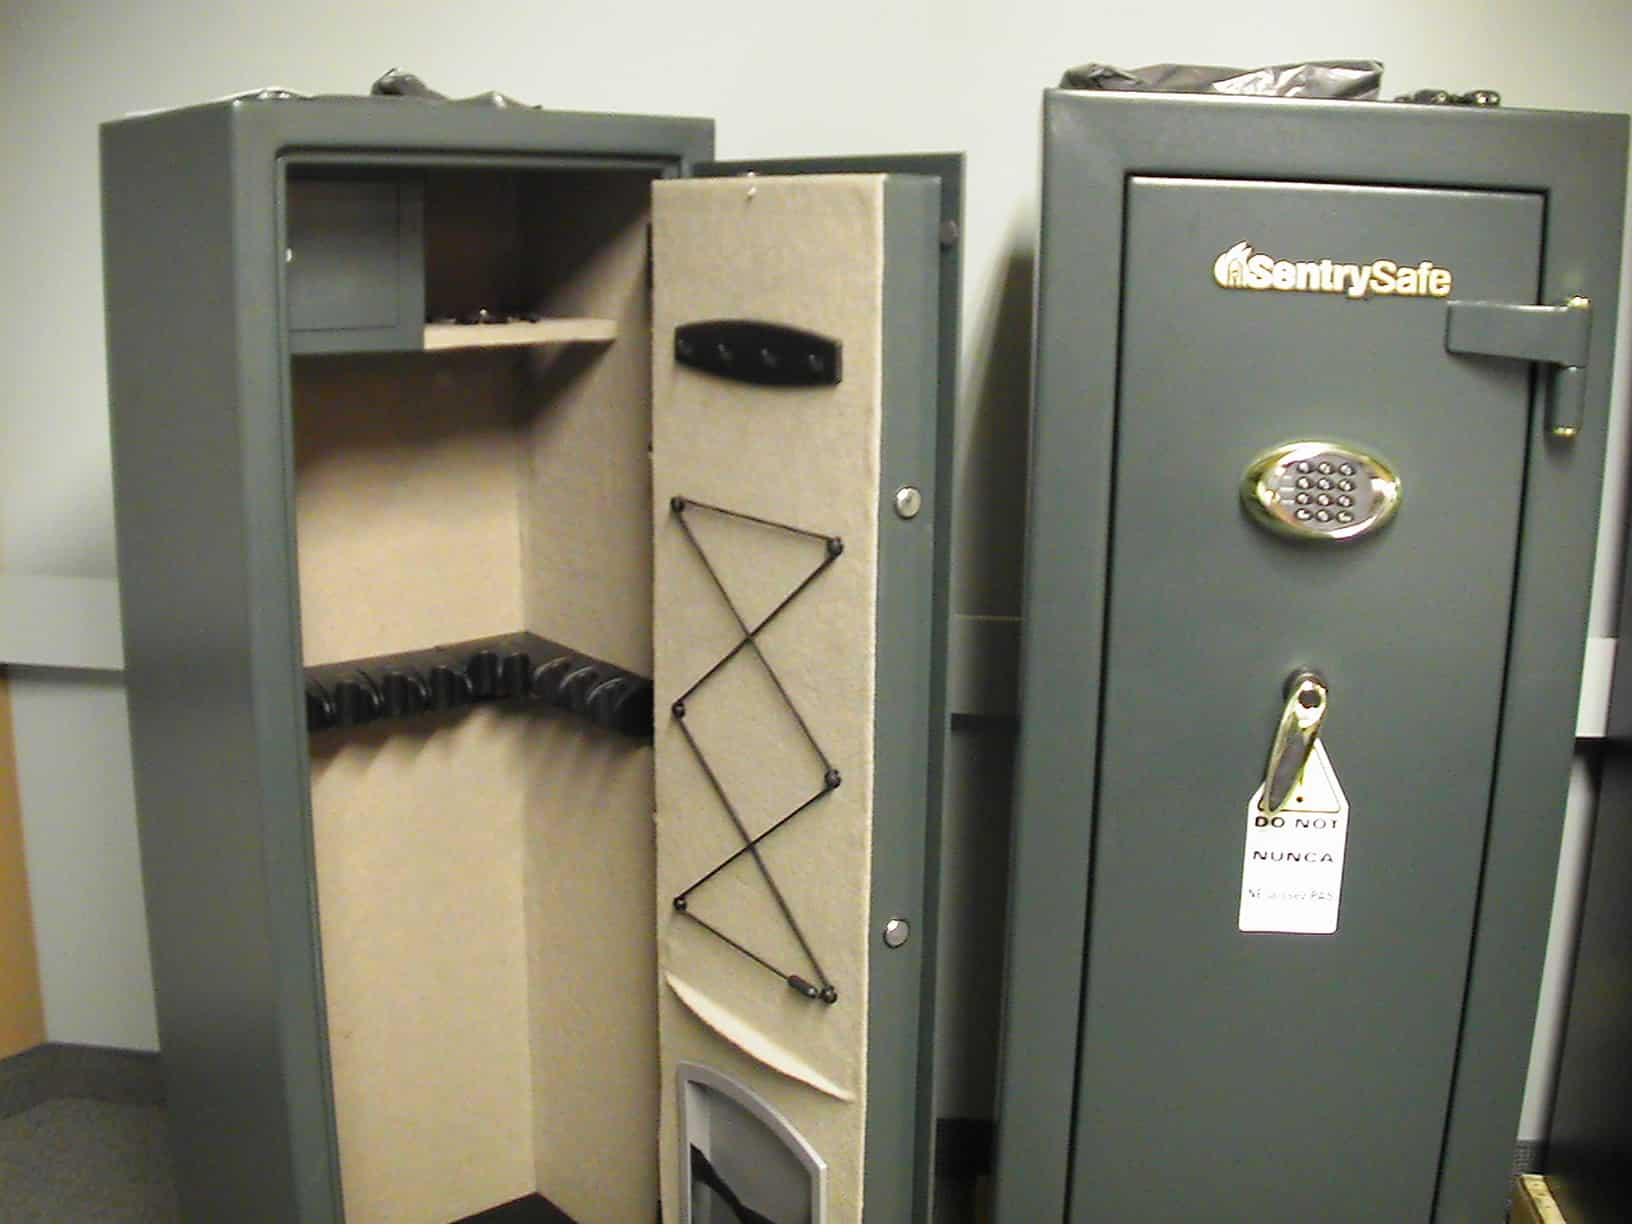 5 Best Gun Safes under $2000 - Top of the Line Protection